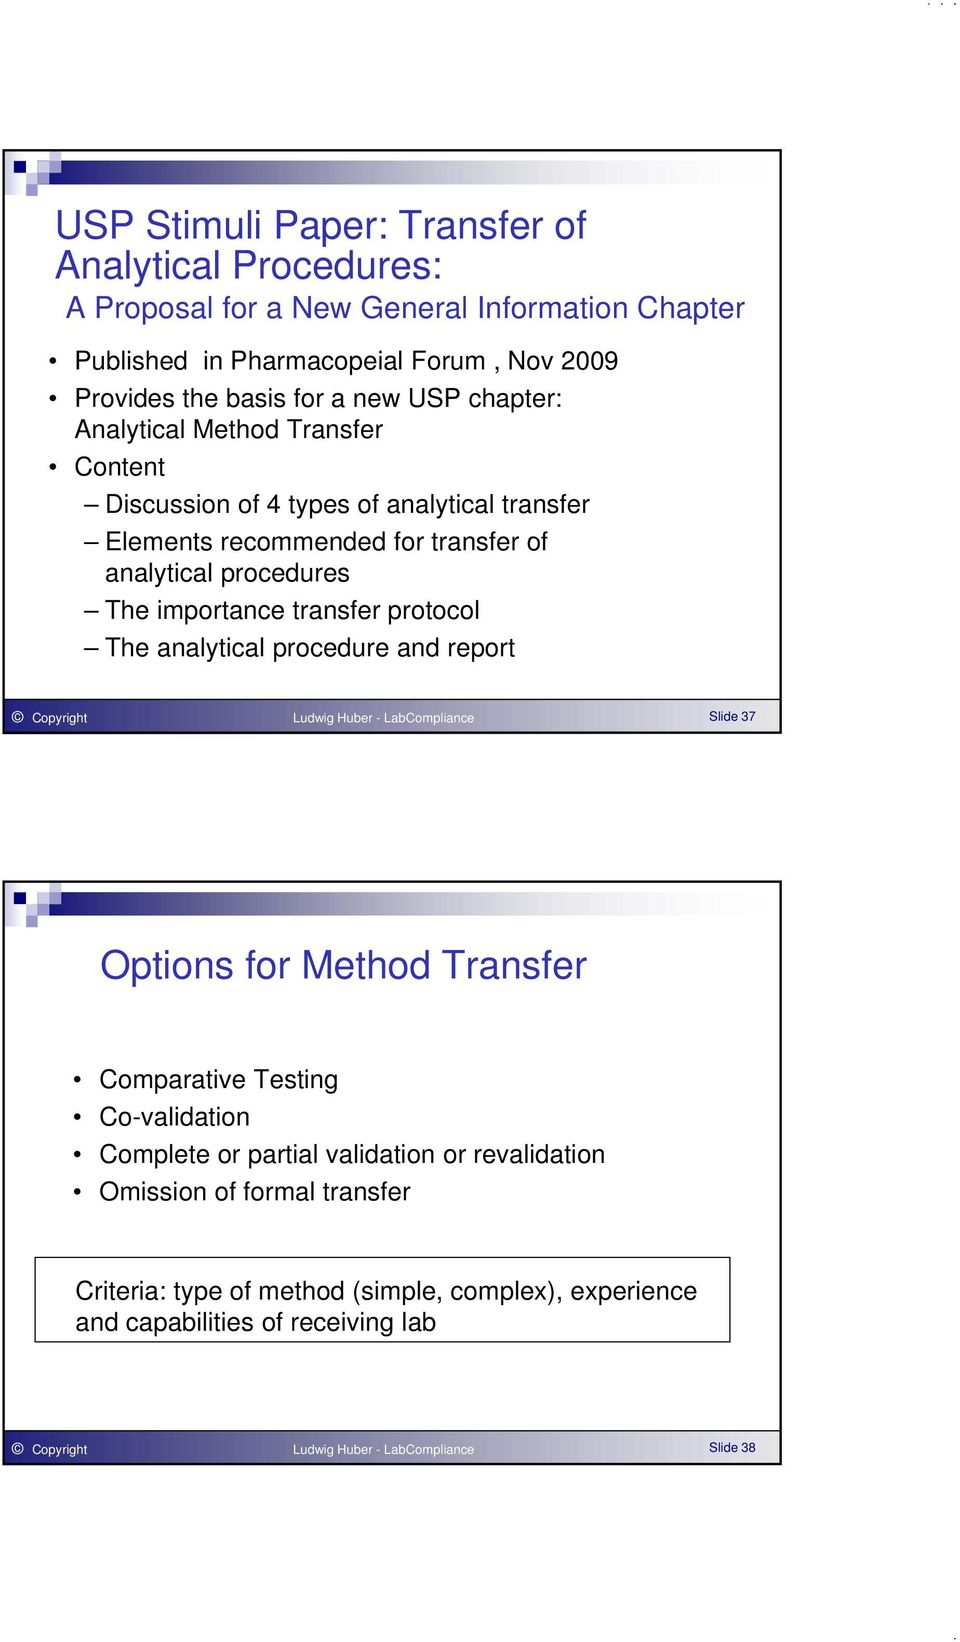 protocol The analytical procedure and report Copyright Ludwig Huber - LabCompliance Slide 37 Options for Method Transfer Comparative Testing Co-validation Complete or partial